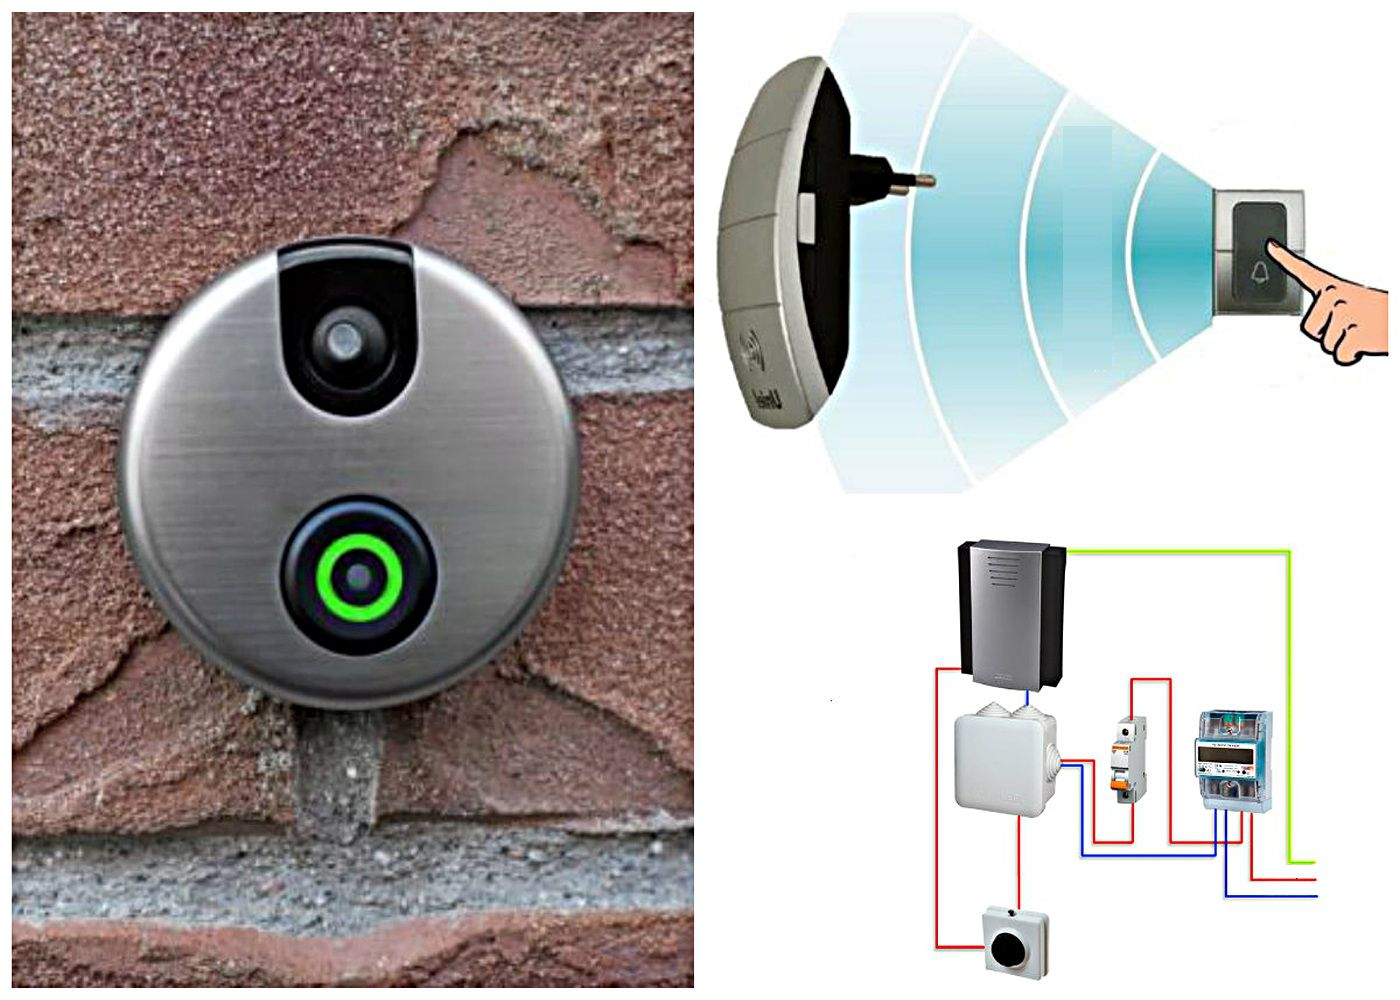 Principle of operation of the wireless door bell